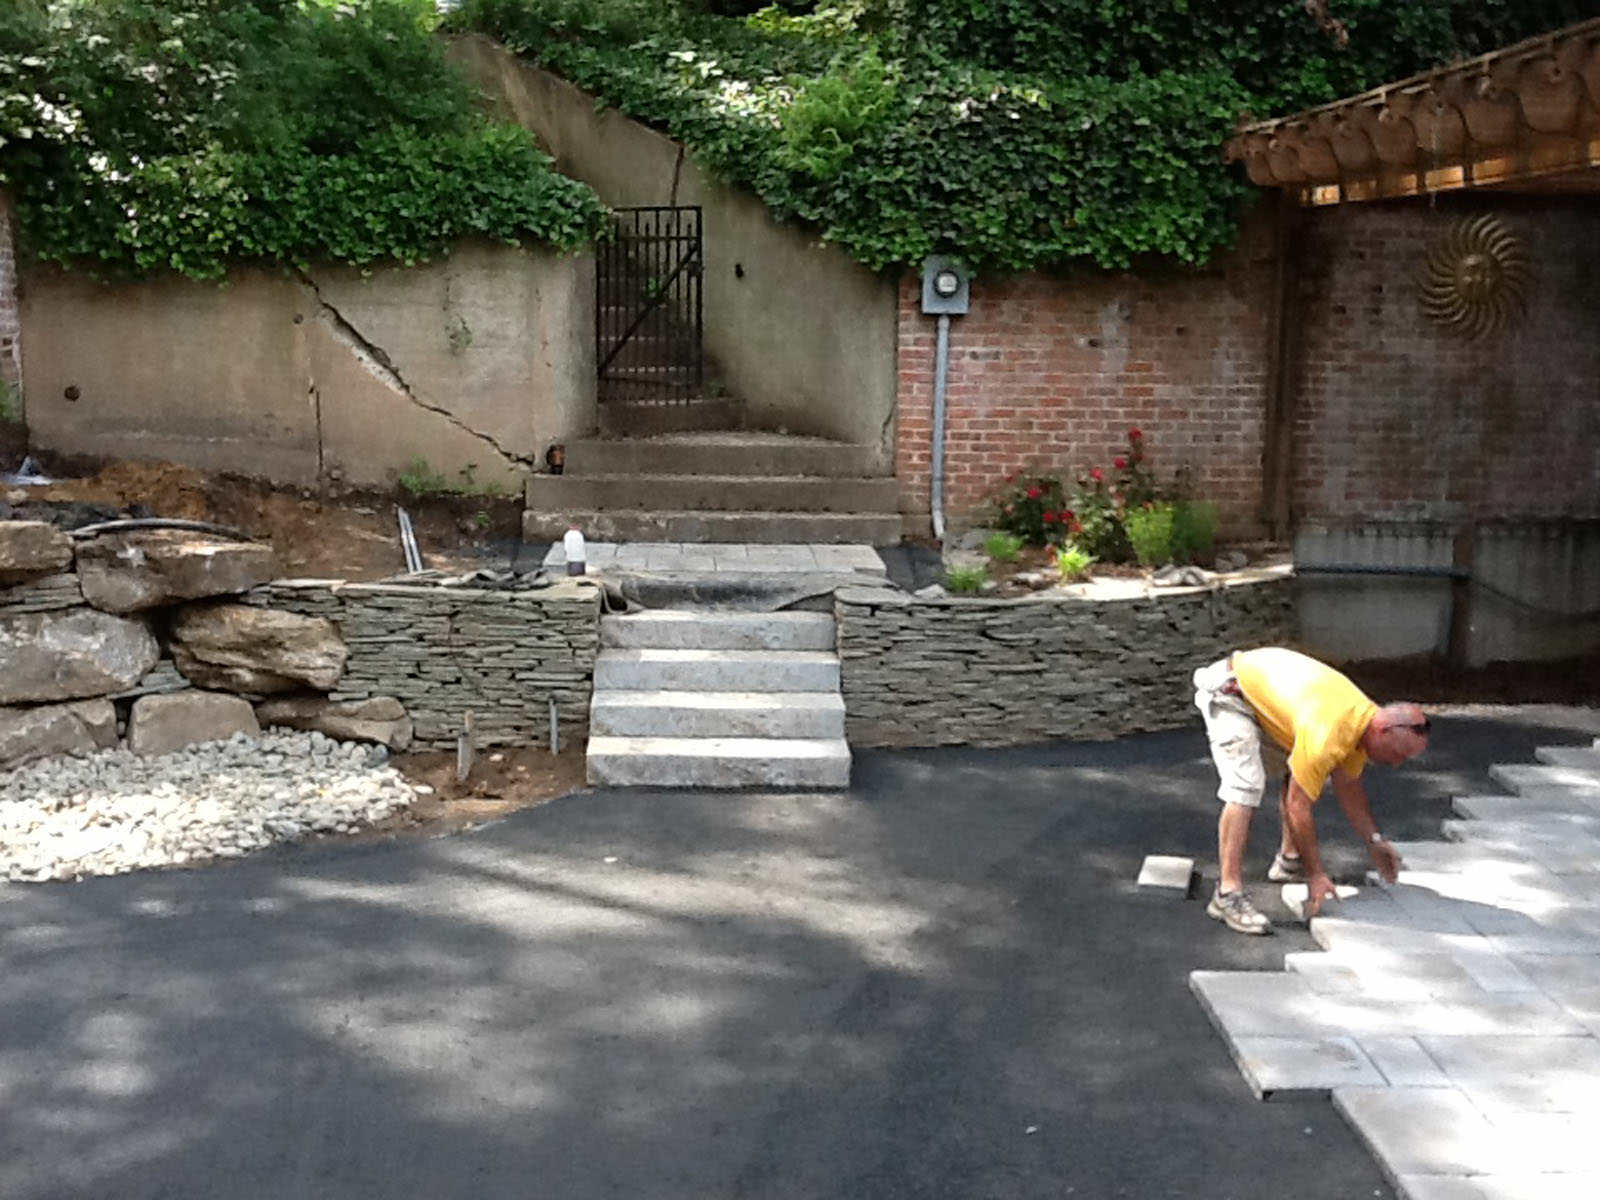 Each flagstone was hand-placed, creating a beautiful geometric patio to balance out the architecture of the home.